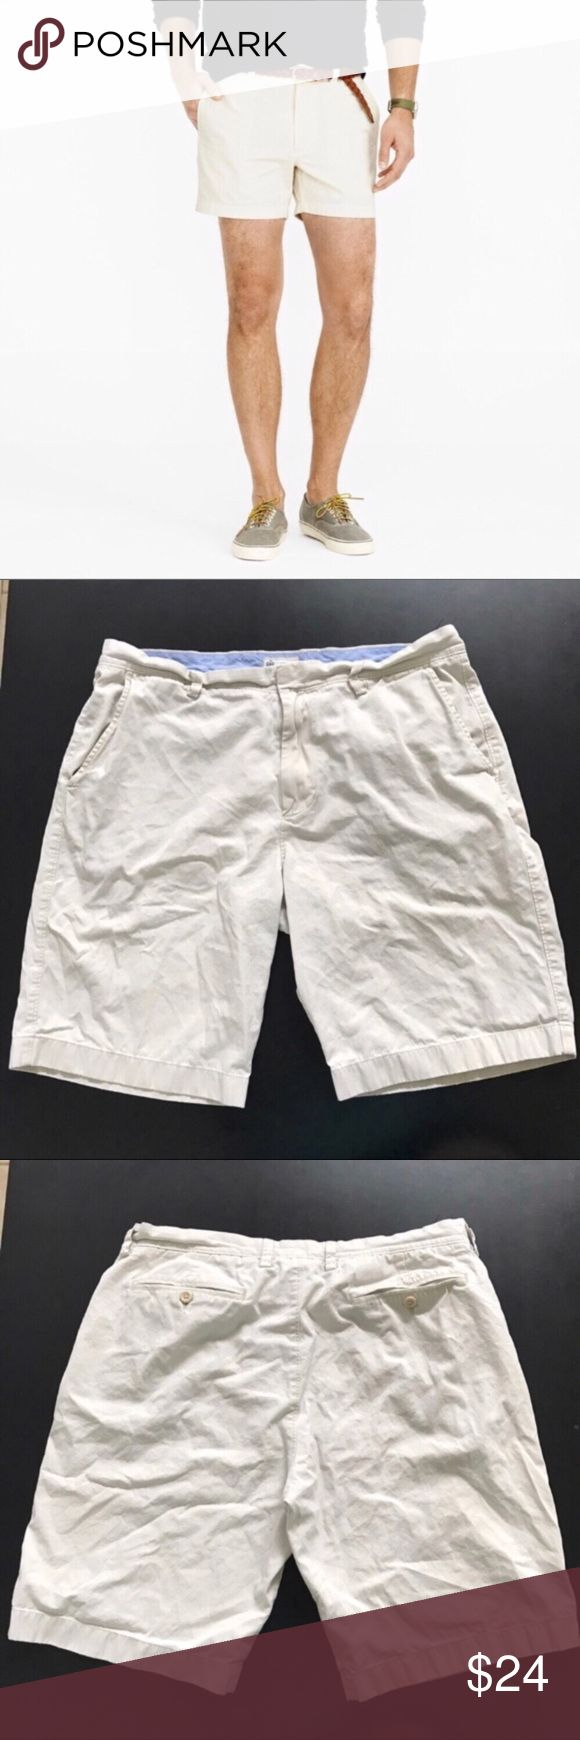 """J. Crew khaki beige preppy men's shorts size 36 Like it or not, khakis are a classic staple in the preppy wardrobe. Can be paired with polo shirts and/or cable knit sweaters. Even a classic button down. Dress up as a preppy guy for Halloween   👕Waist 36"""" 👕Rise 11.5"""" 👕Inseam 10"""" J. Crew Factory Shorts"""